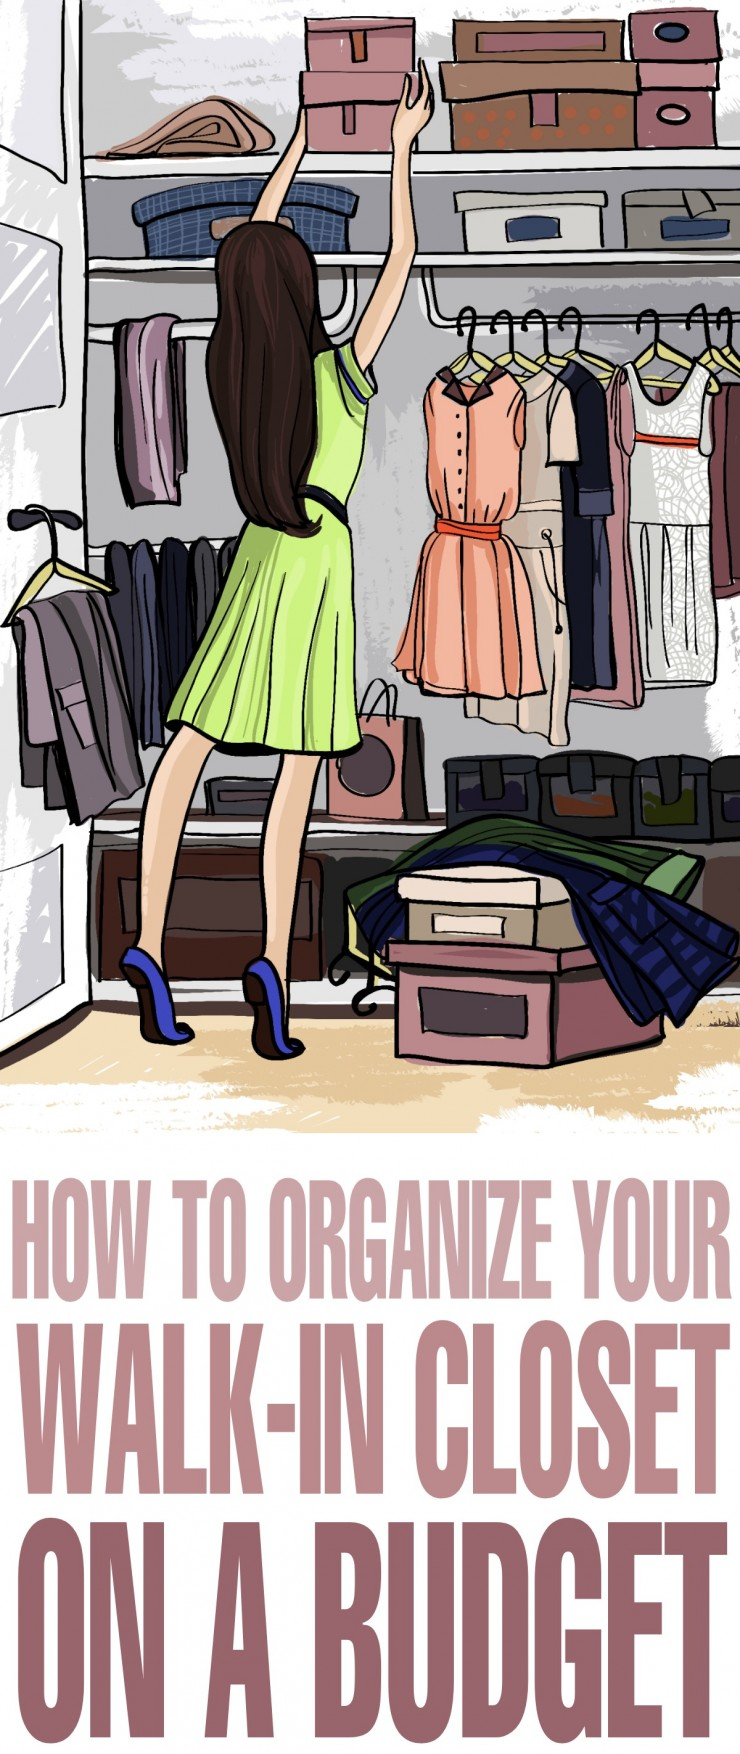 When you have a walk-in closet, you get more space for all of your clothes, shoes, and accessories. Unfortunately, closets tend to get messy; and the more space you have, the messier it can get. If this sounds familiar, continue reading to get tips on how to organize your walk-in closet on a budget.